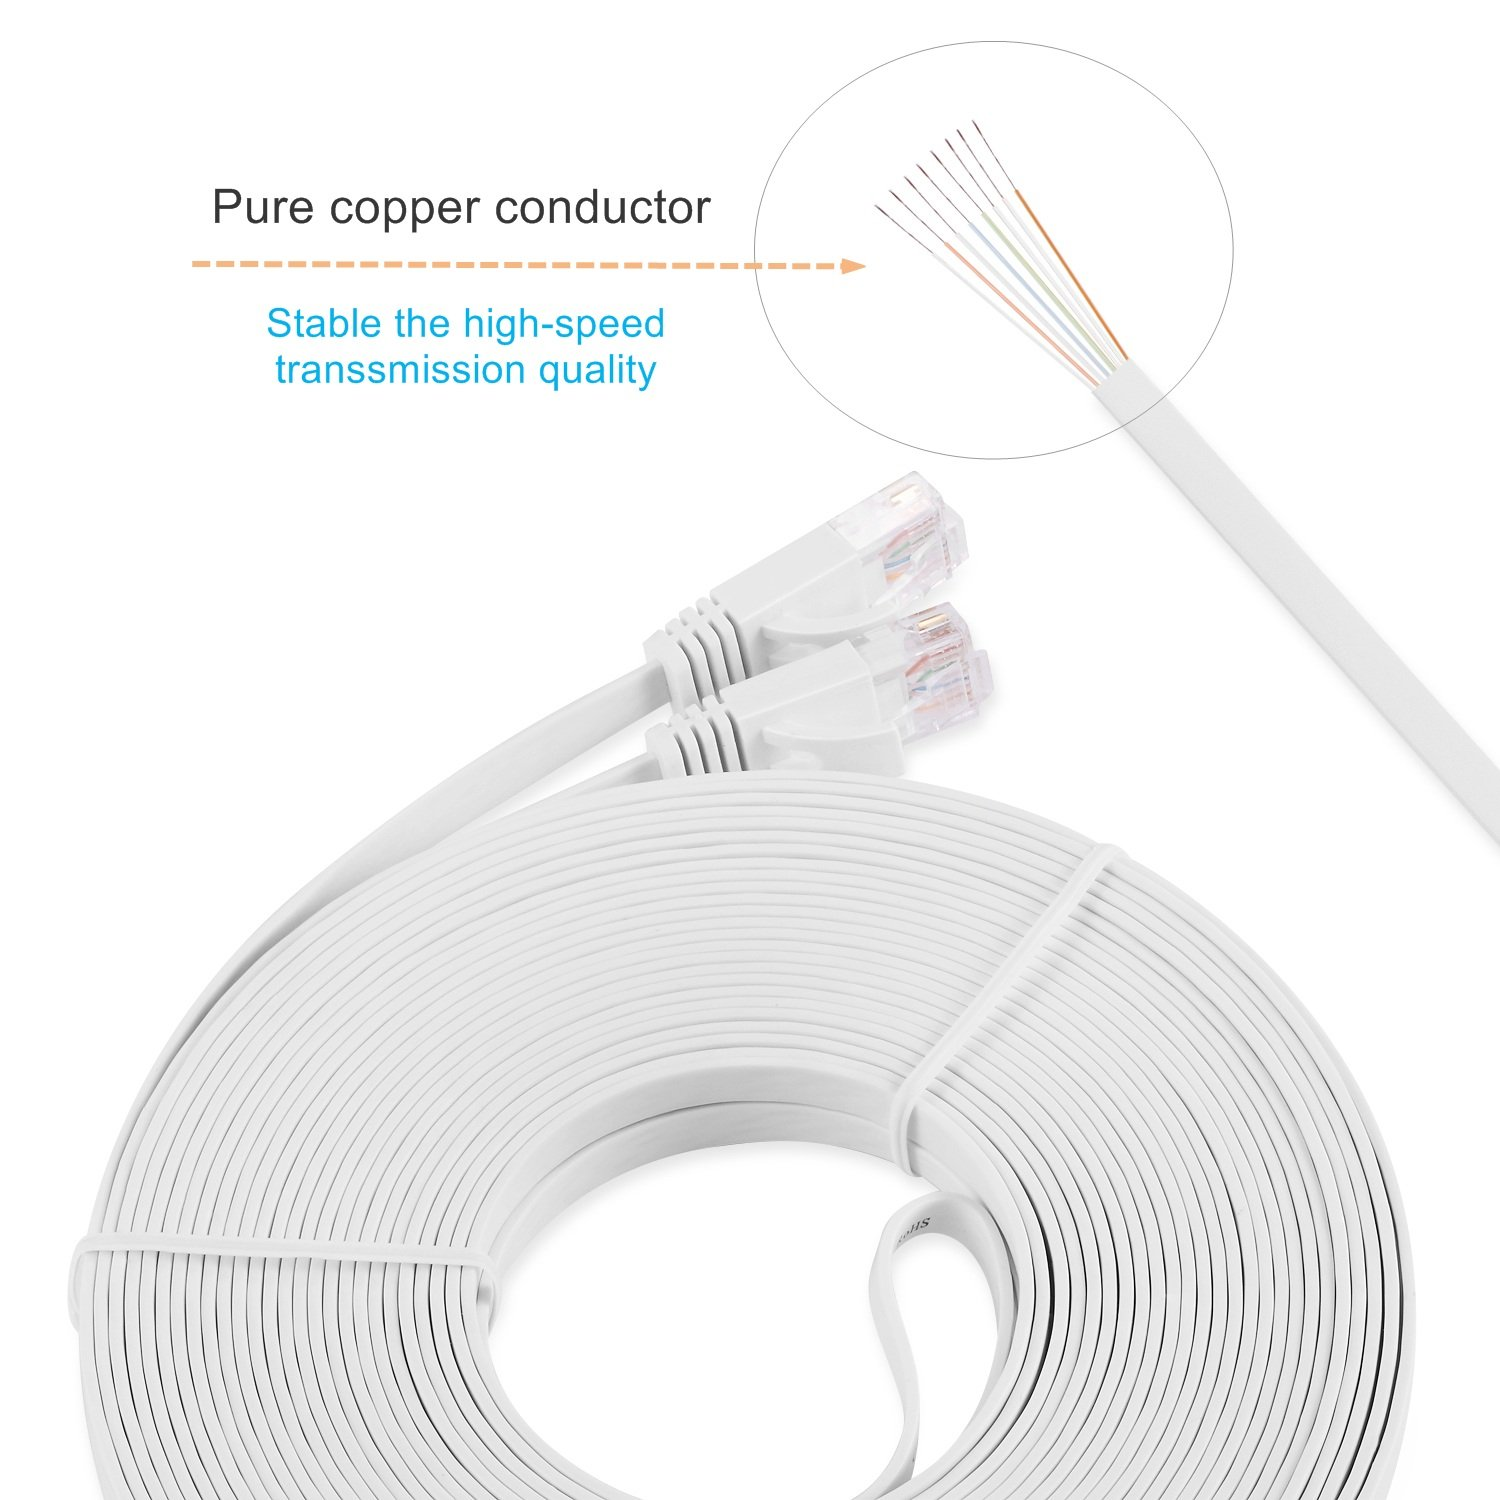 Cat6 Ethernet Cable 50 Ft High Speed White With Free Network Cables Cat5e Black Flat Patch 32 Awg Foot Clips Ikerall Rj45 Internet Wire Feet15